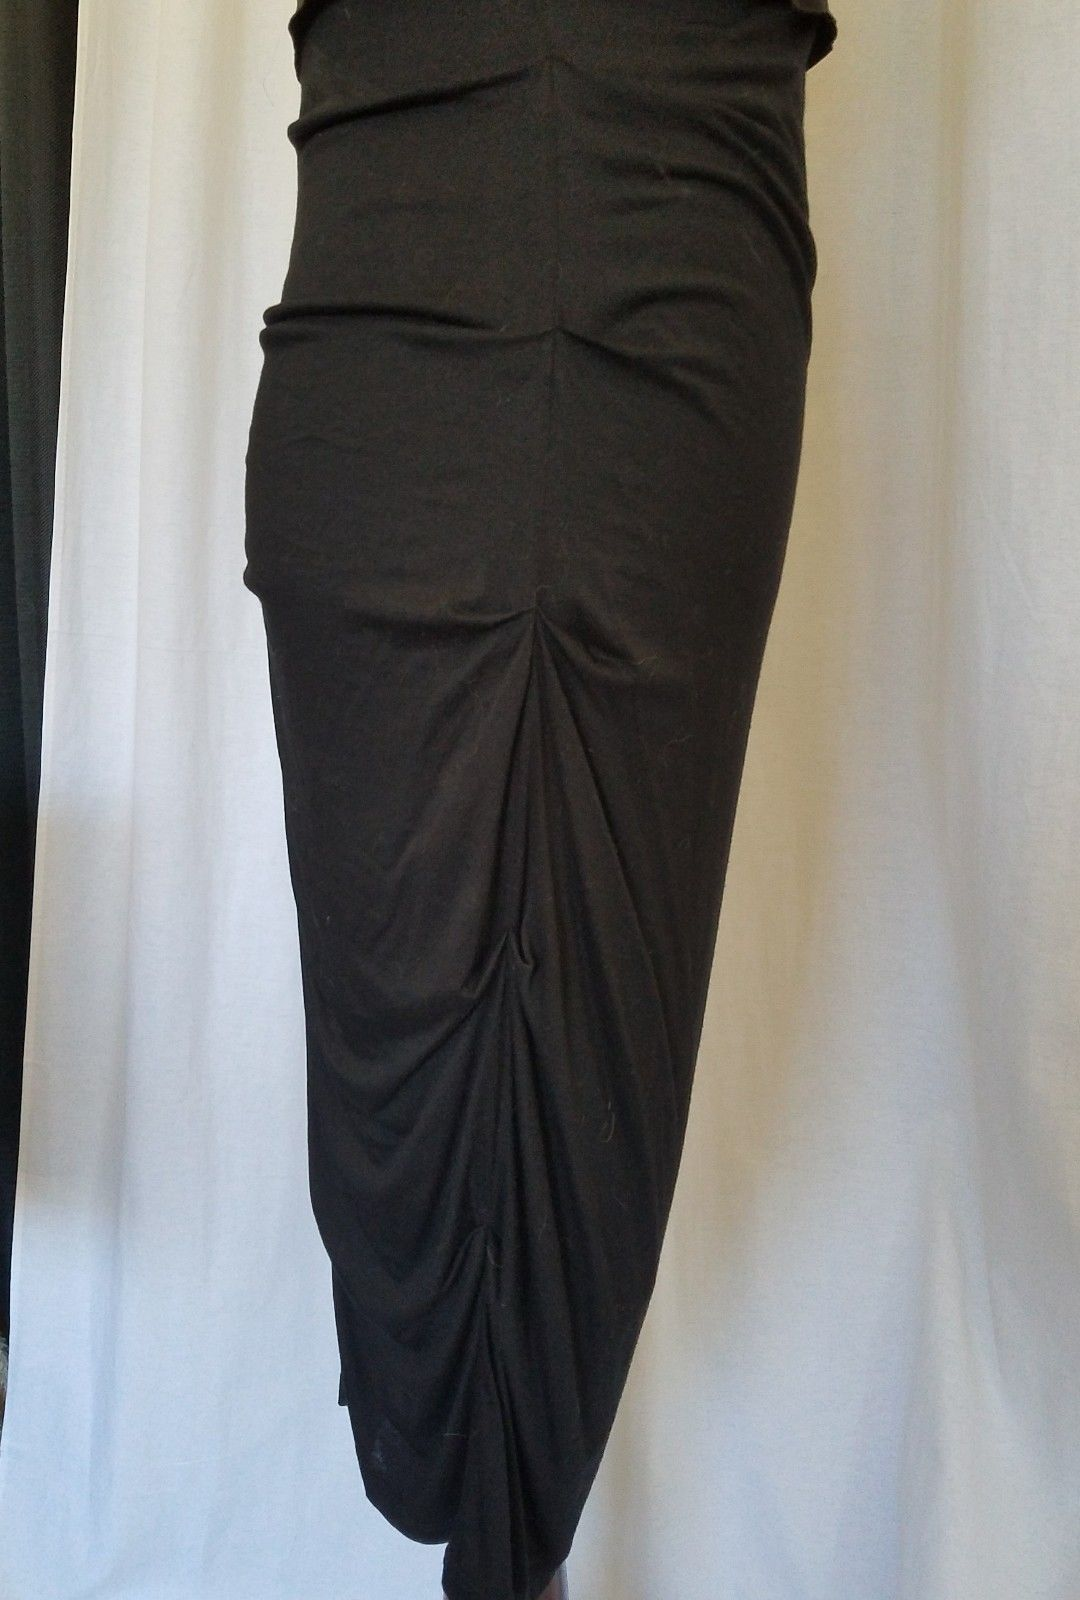 Rubber Ducky Black Satin Like Corsett Bustier Dress With Rouching Bodycon NWOT L